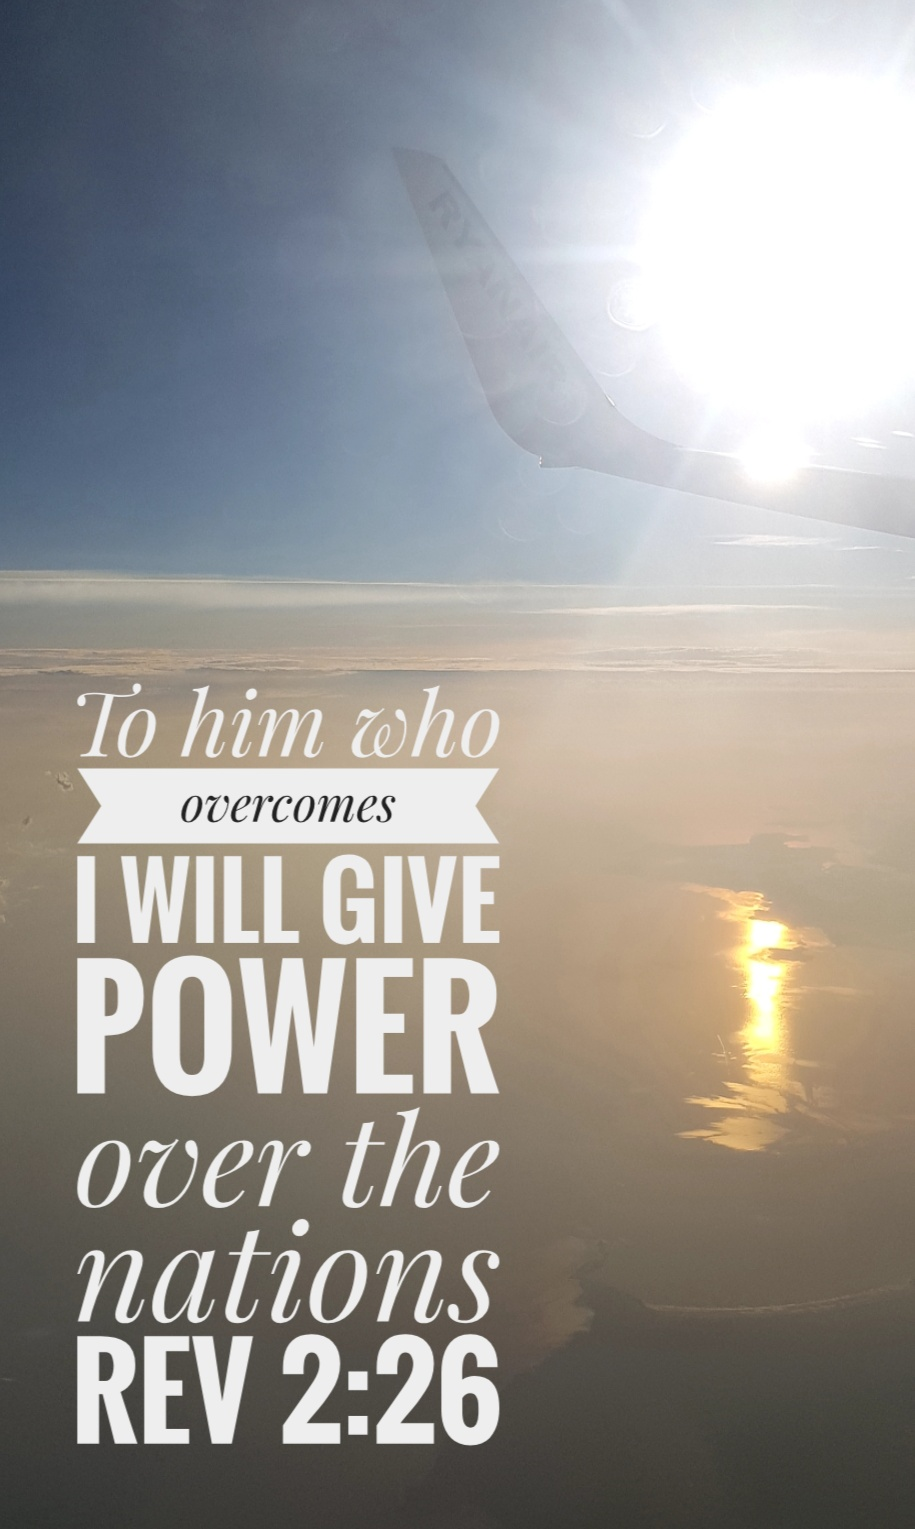 Power over the nations